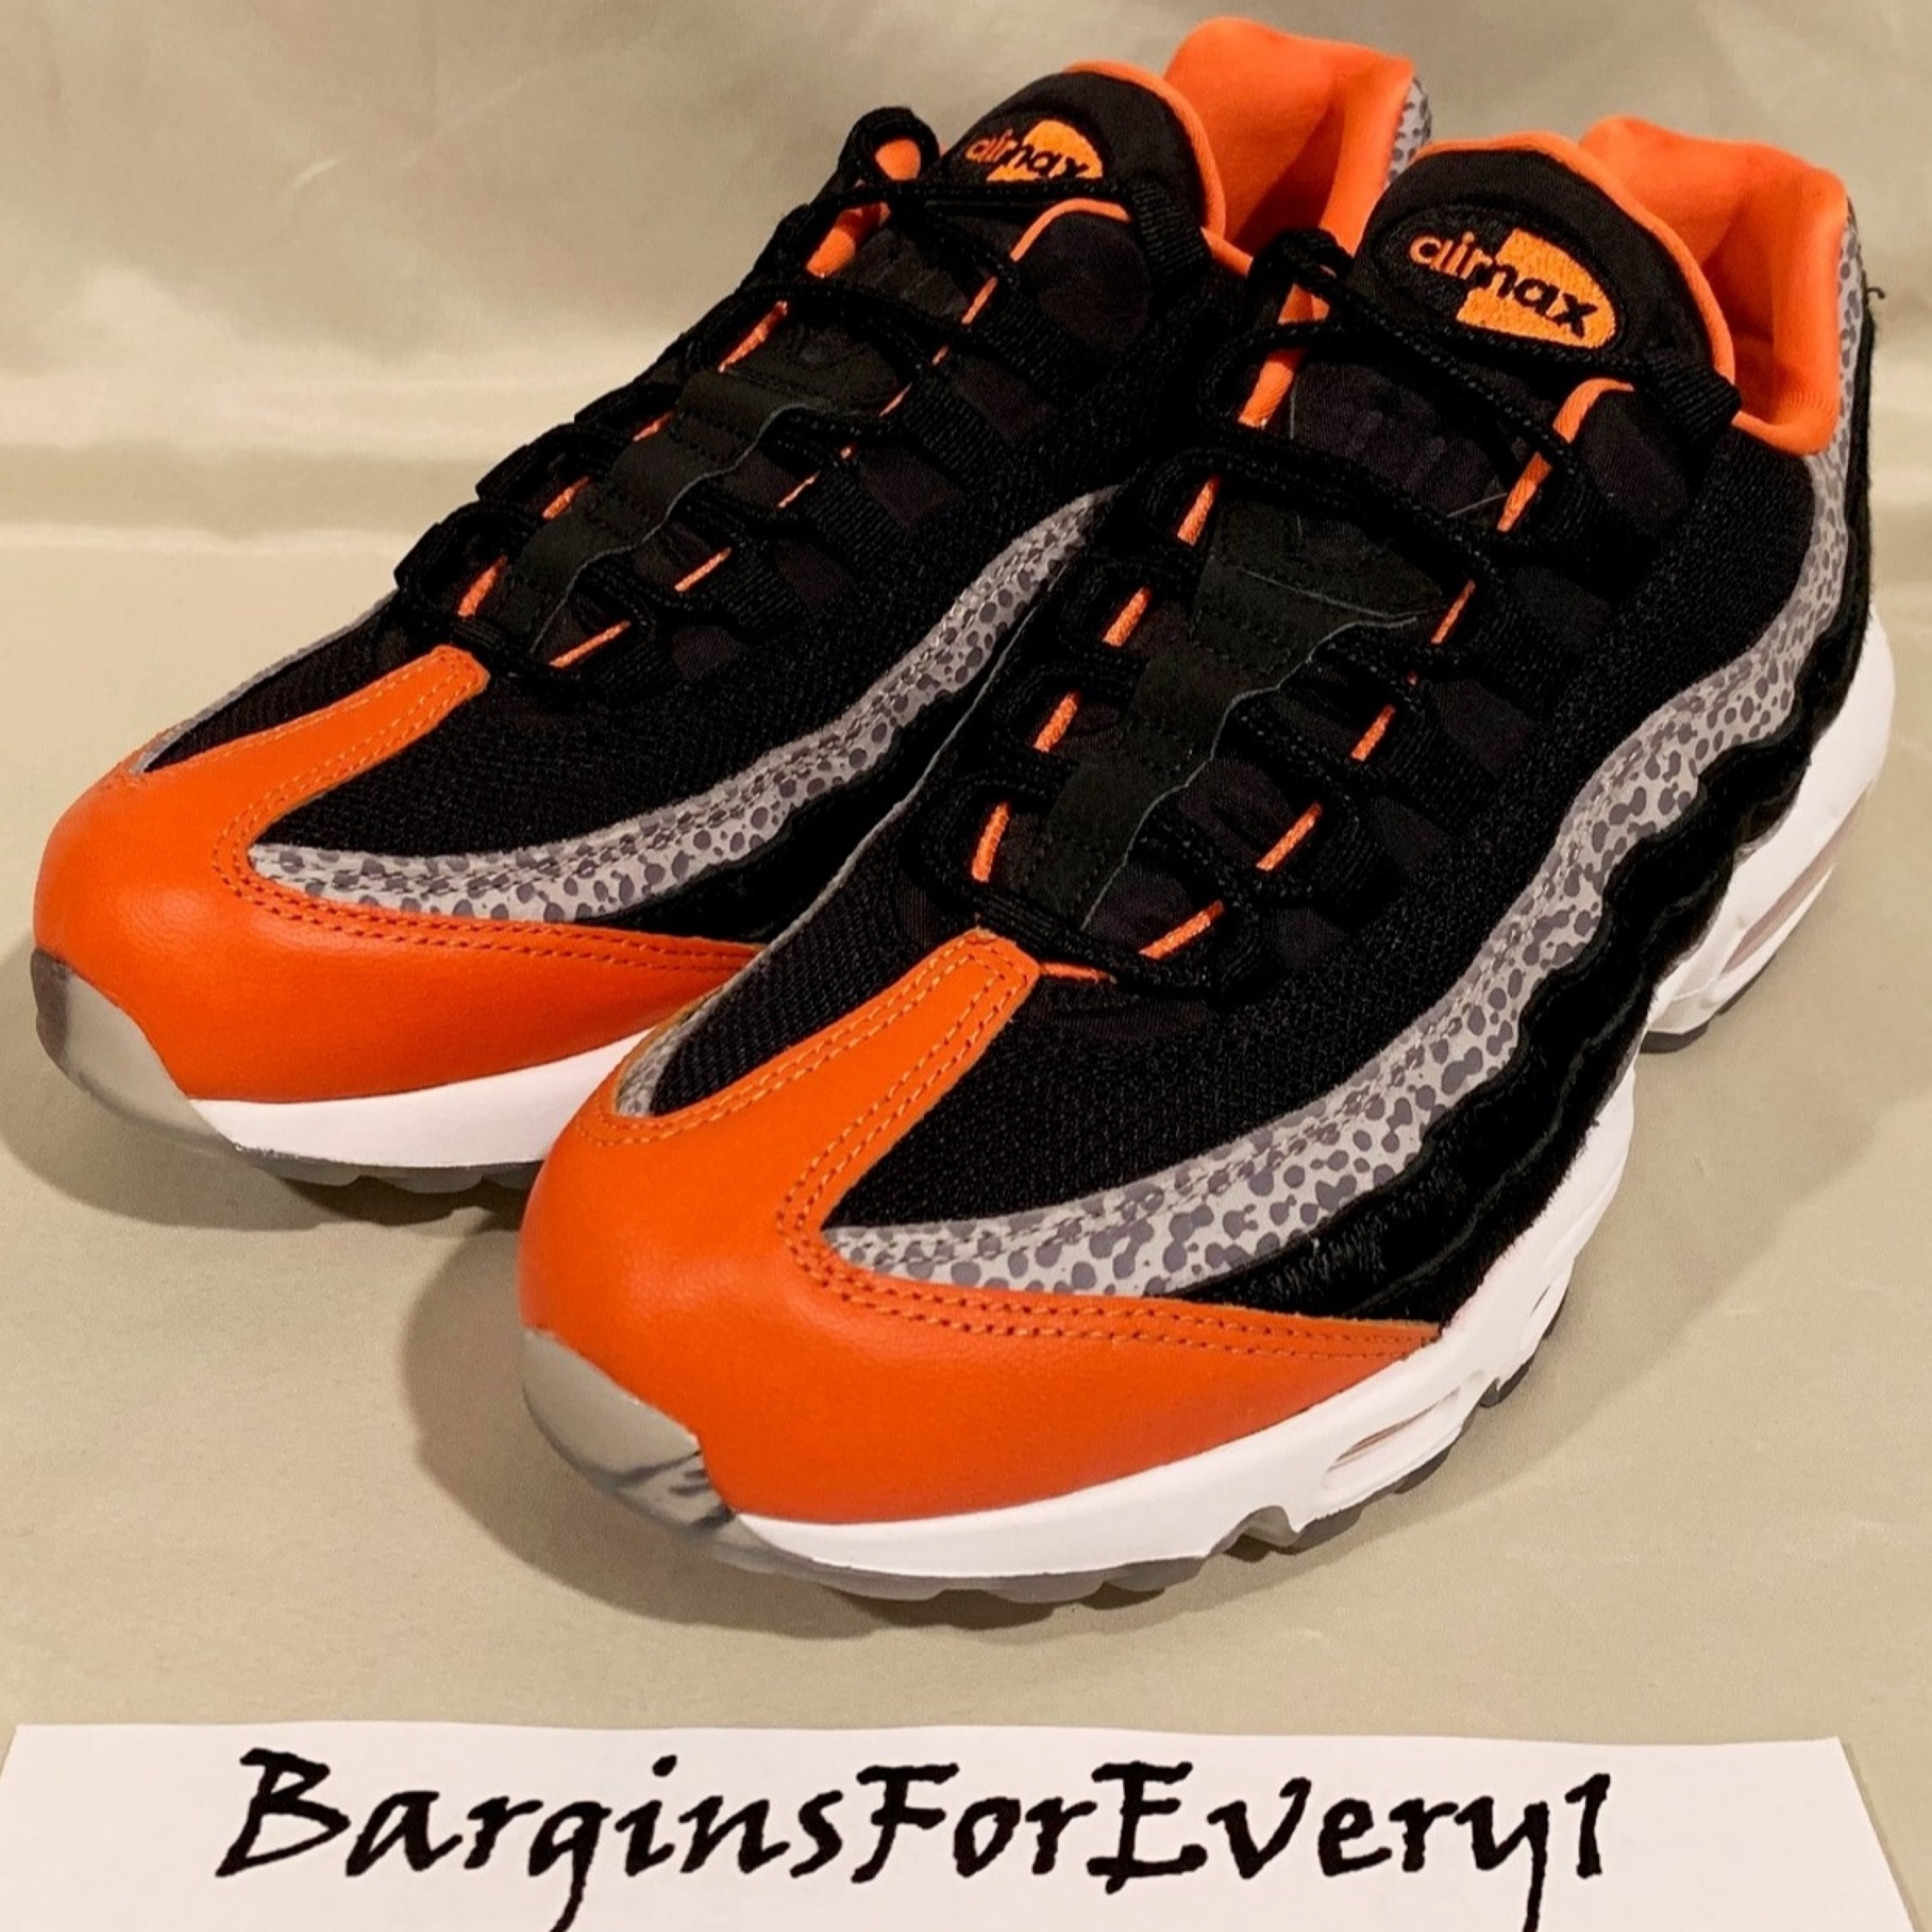 design intemporel 91b07 758d1 New Nike Air Max 95 Safari